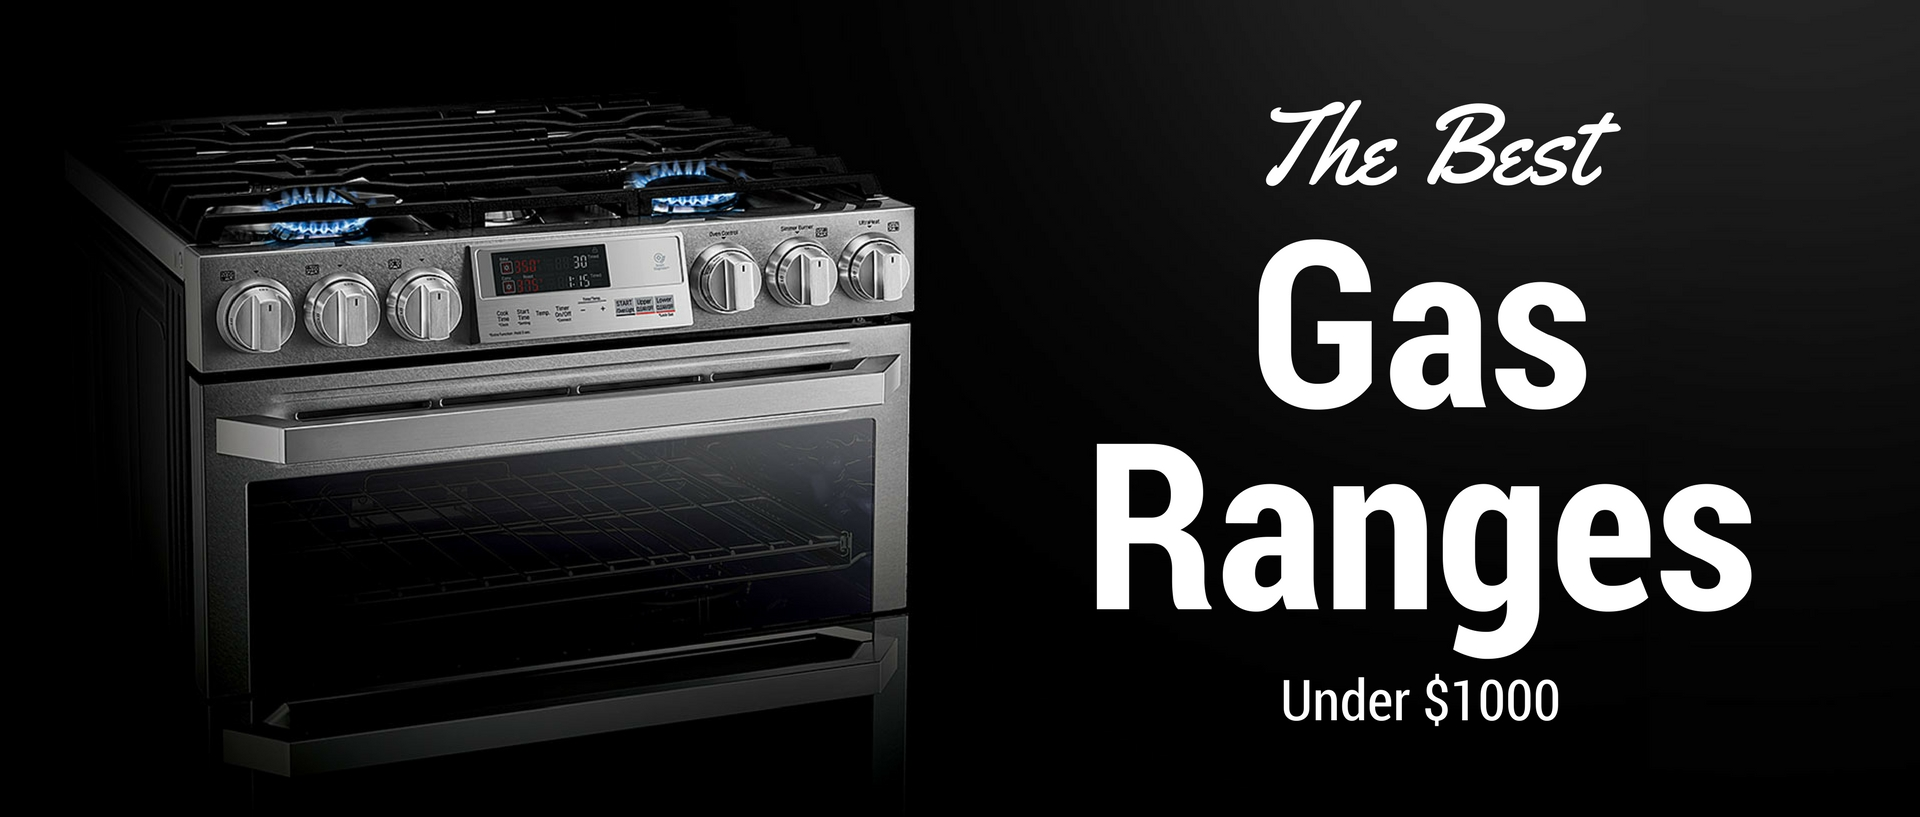 the best gas ranges under $1000